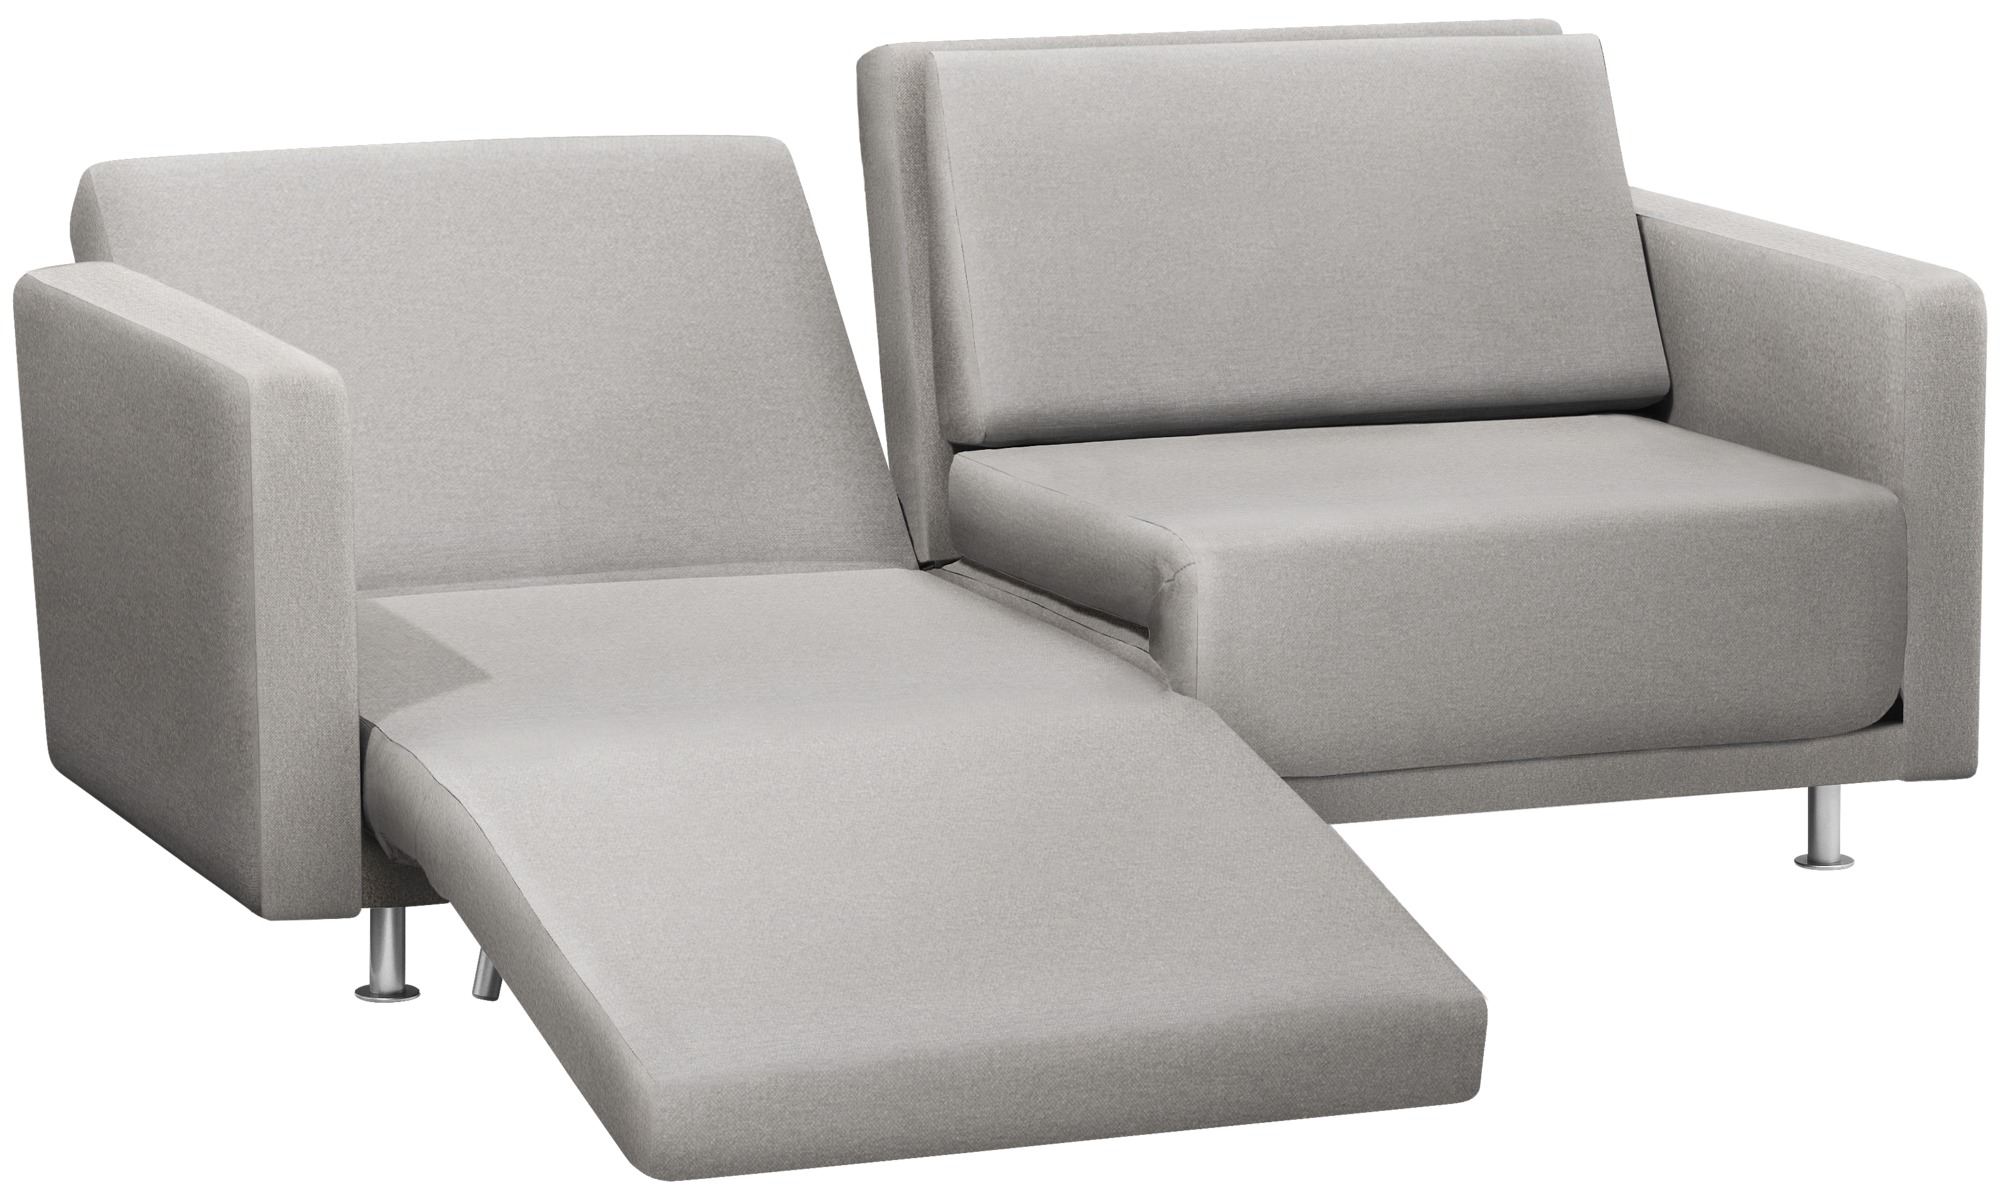 Sleep Recliner Chair Sofa Beds Melo 2 Sofa With Reclining And Sleeping Function